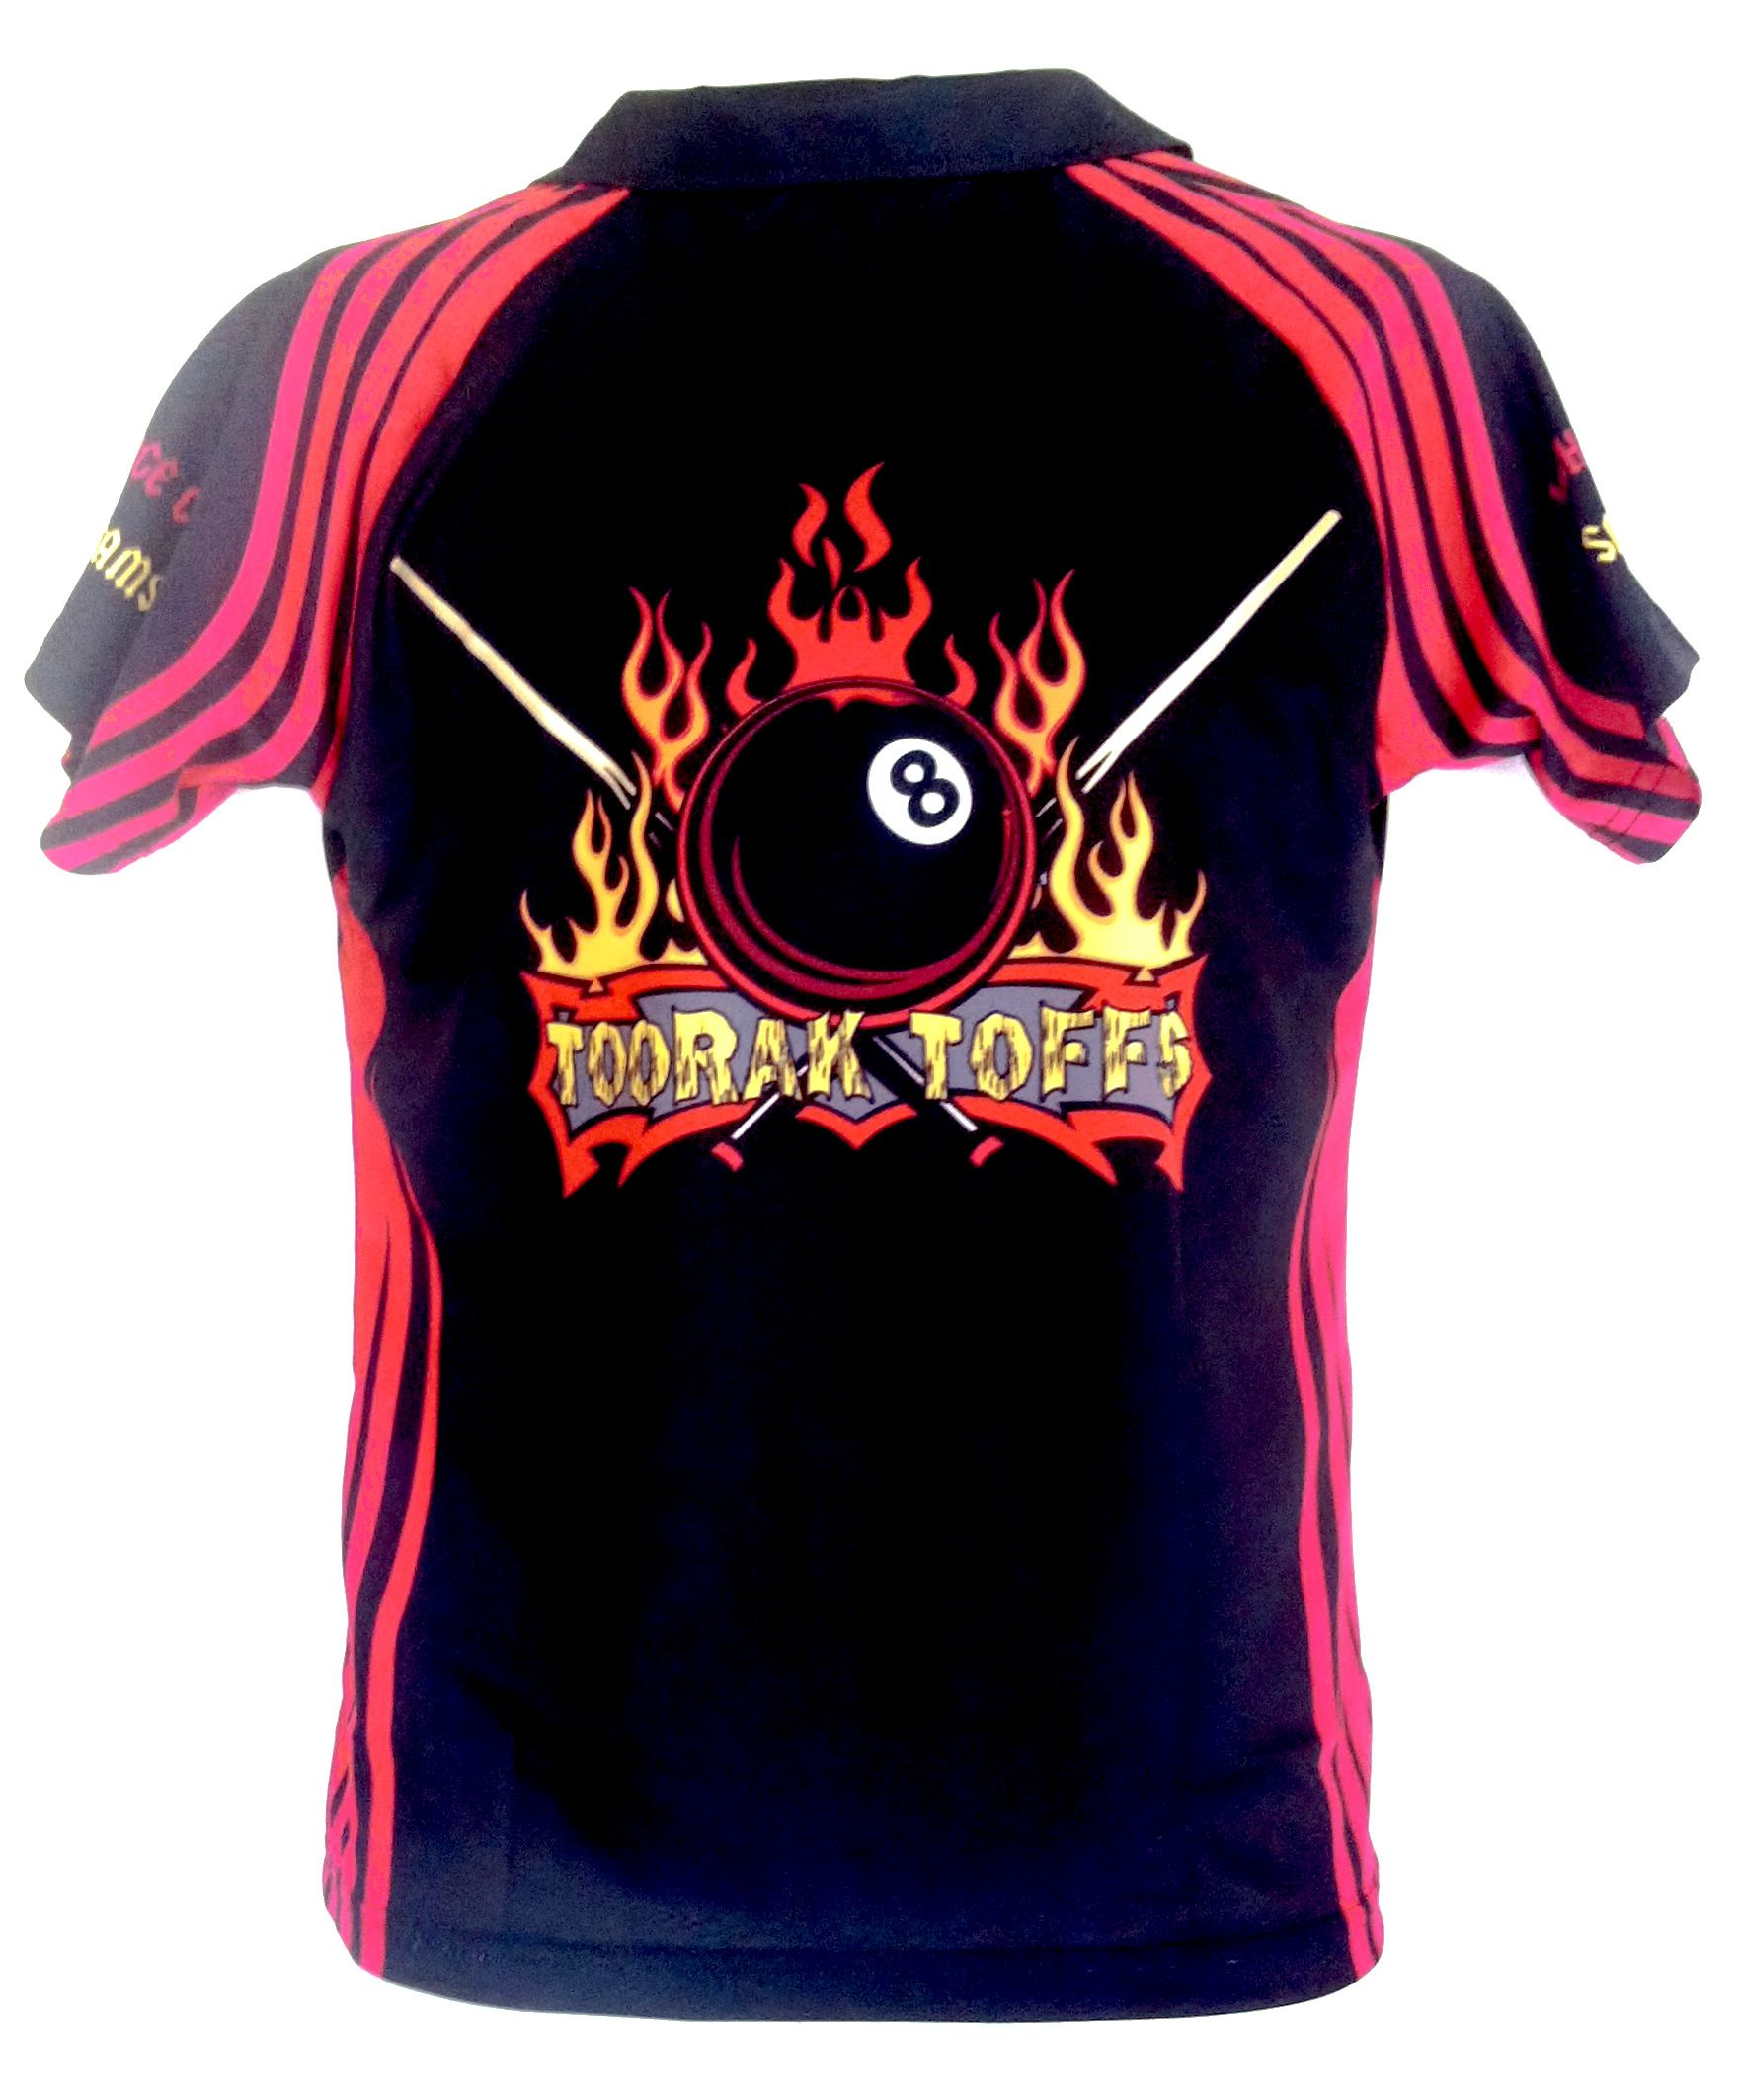 here is a creative sublimated polo shirt design for toorak toffs made especially for their pool